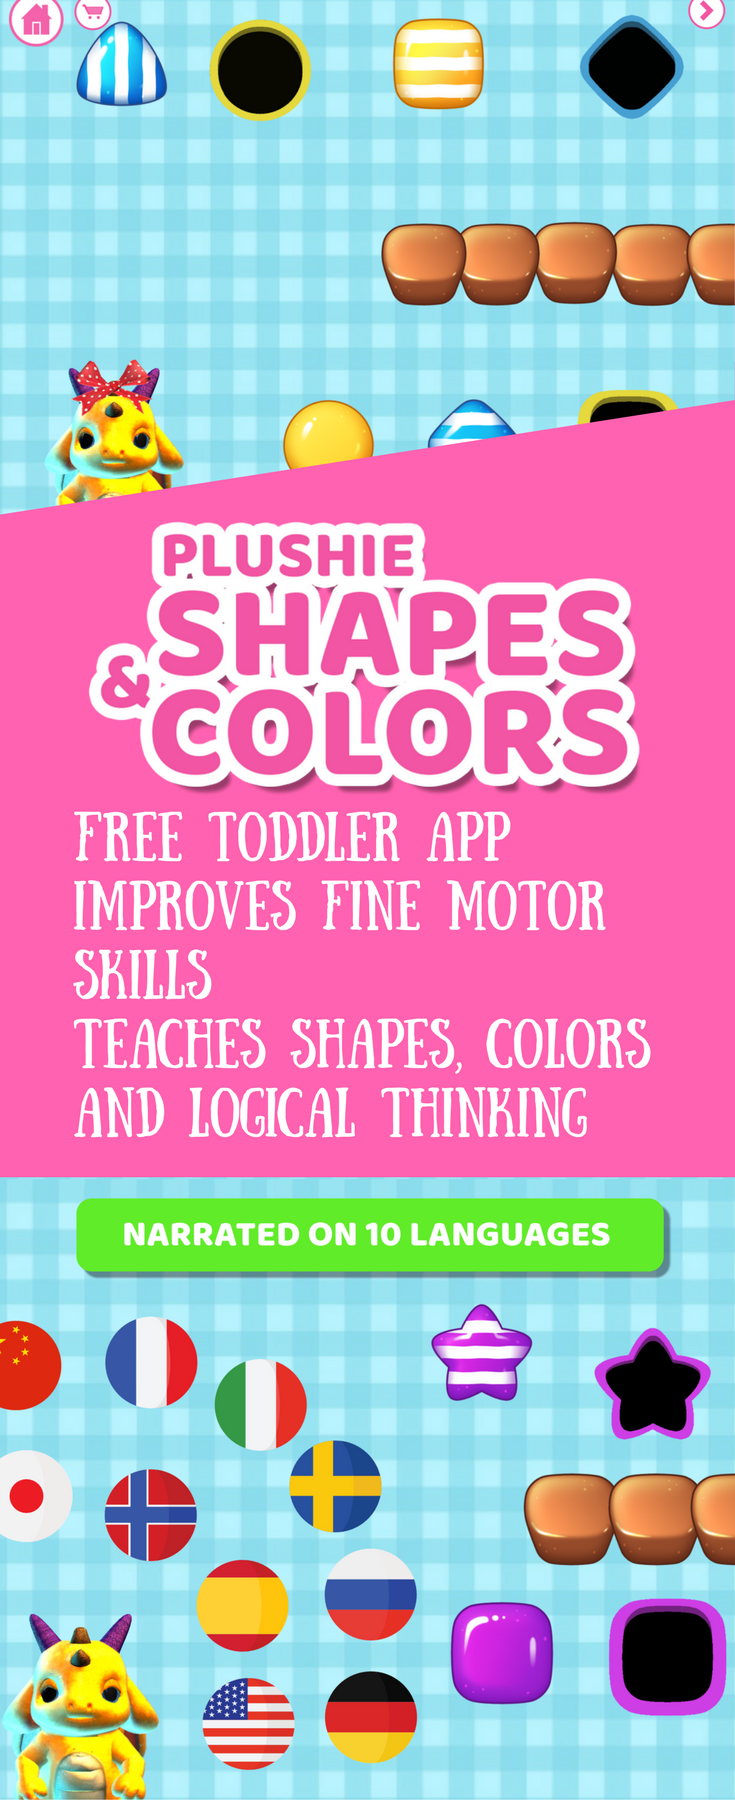 Plushie Shapes & Colors is a fun and free educational game